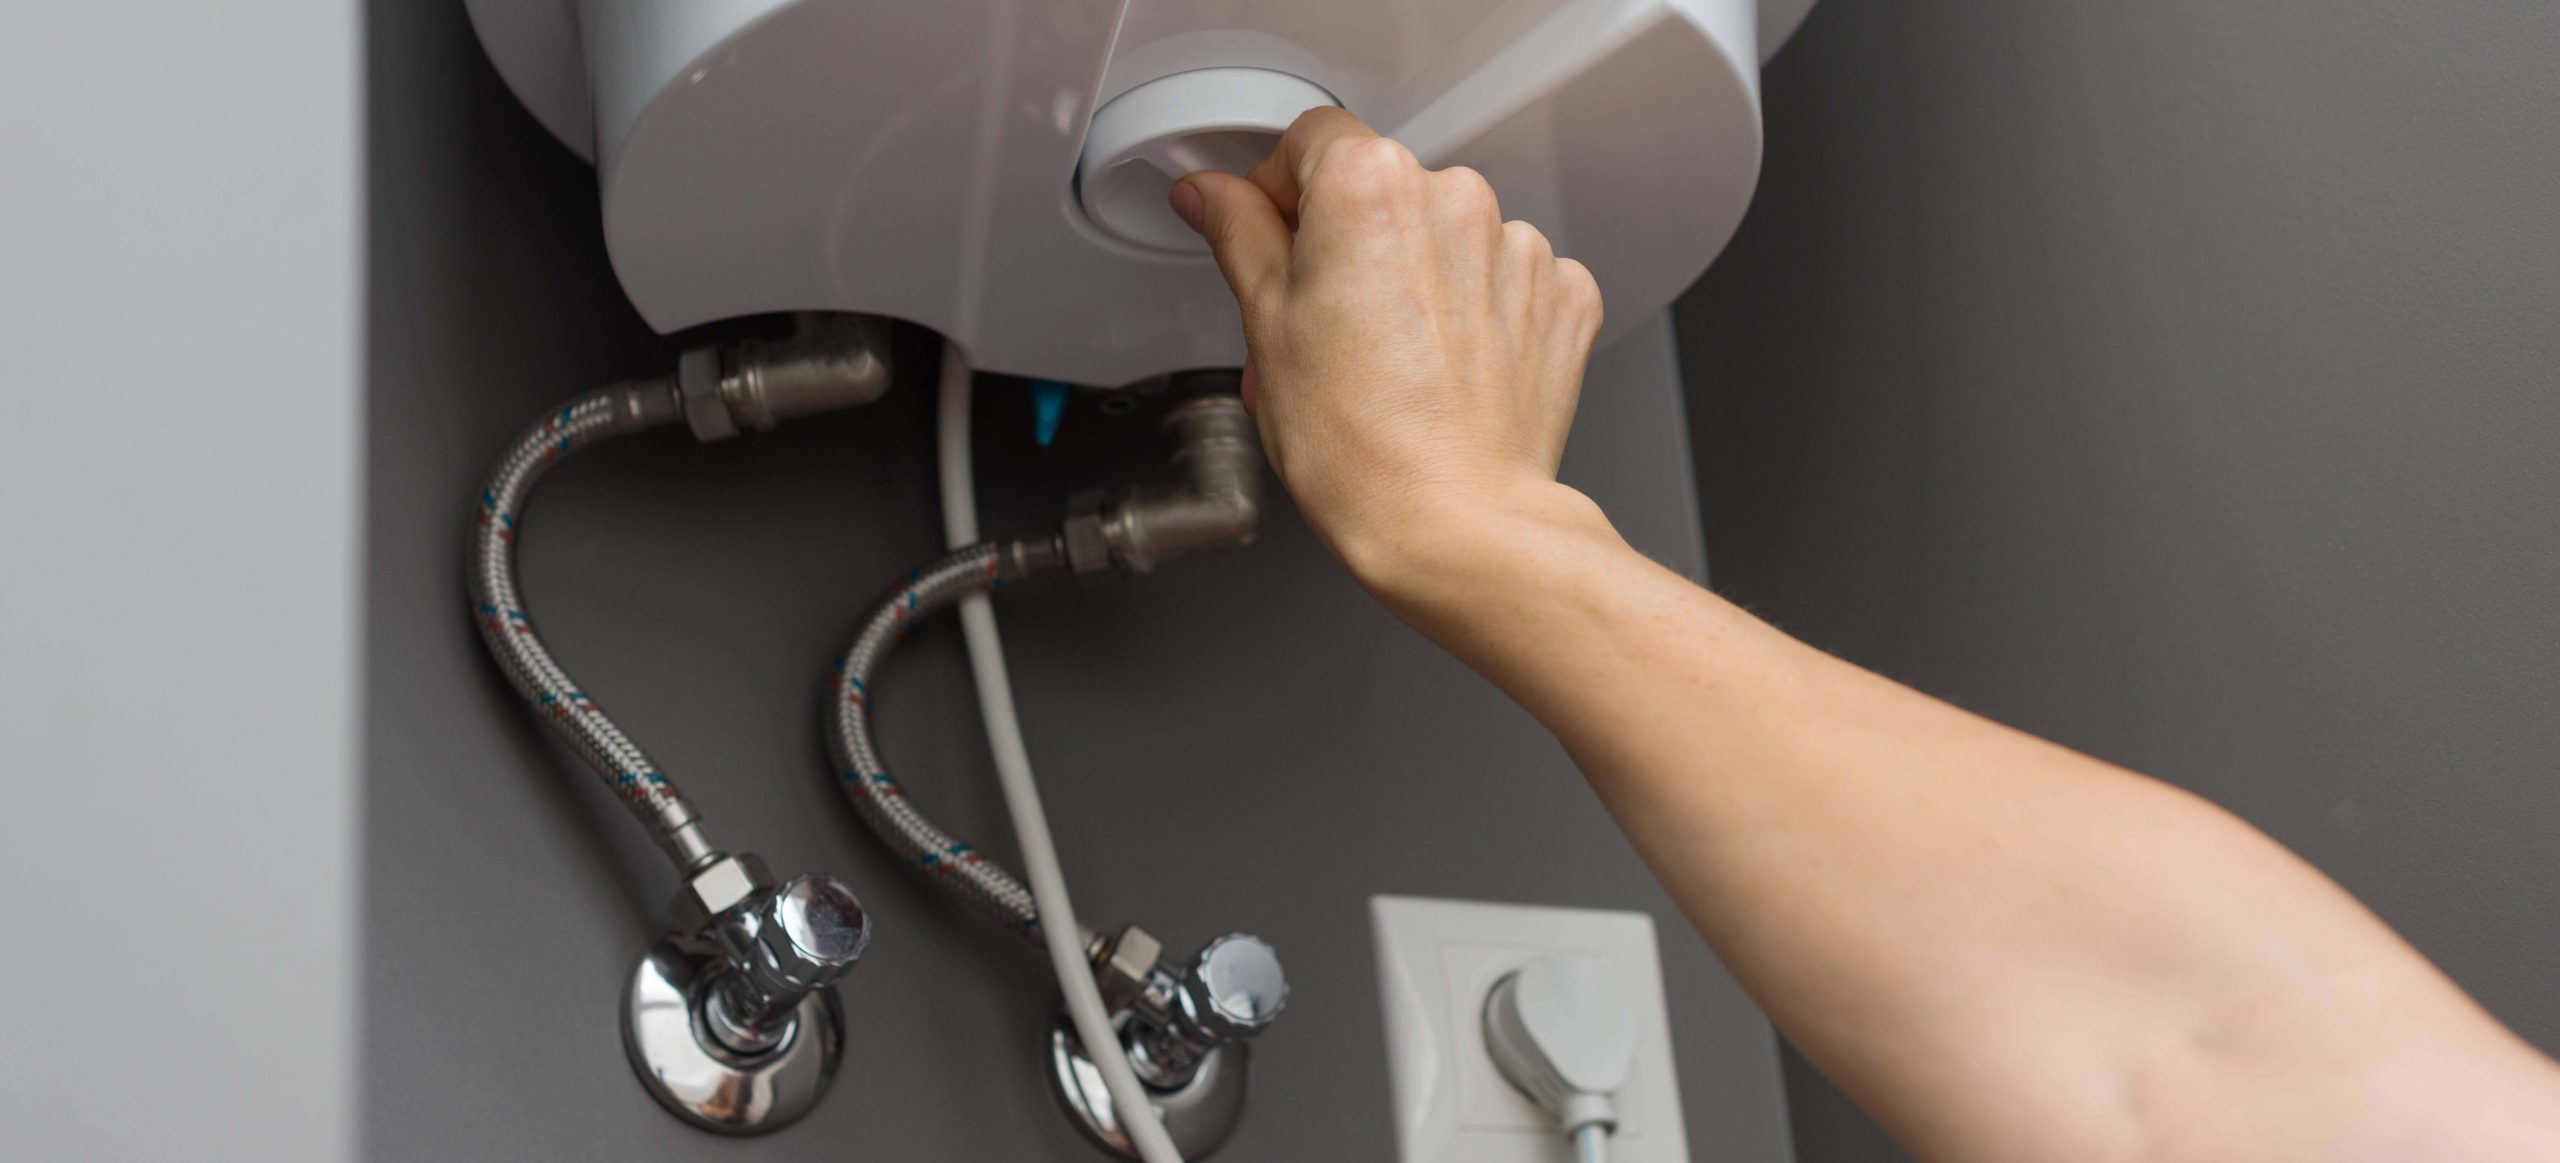 A photo of a woman choosing a hot water heater